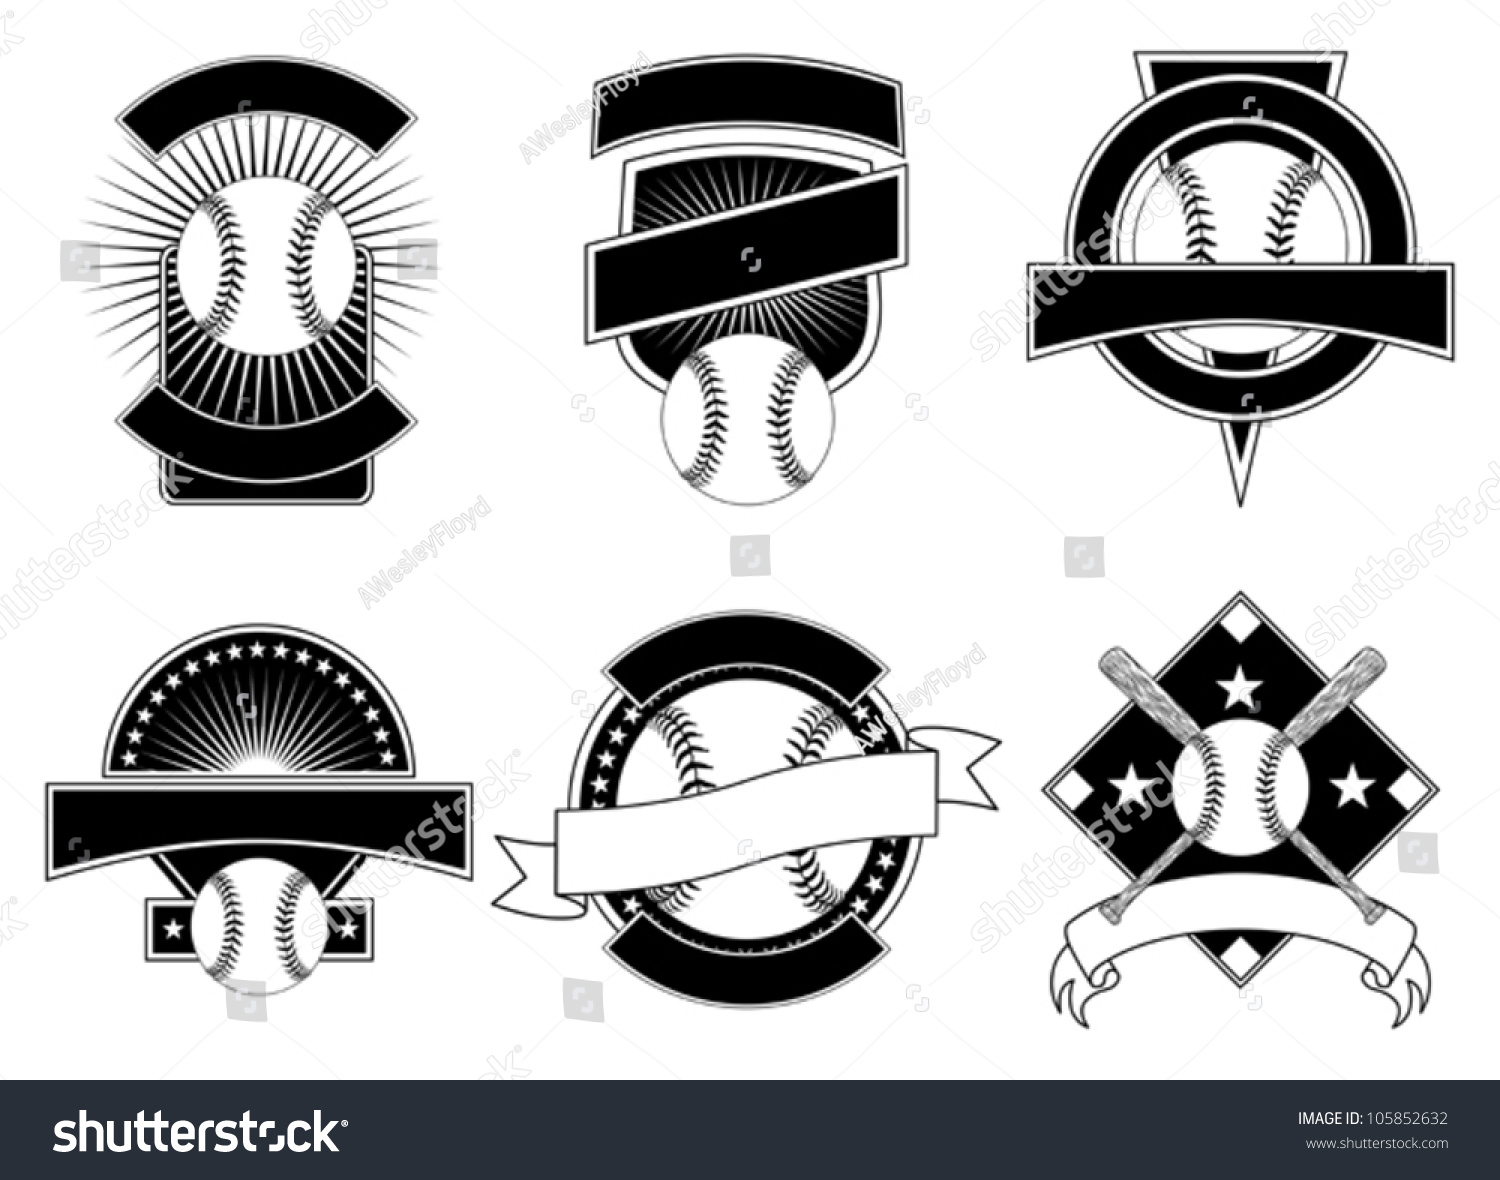 Baseball Shirt Design Ideas custom baseball shirts custom baseball logos team uniforms stl shirt co Baseball Design Templates Is An Illustration Of Six Baseball Design Templates For Use With Your Own